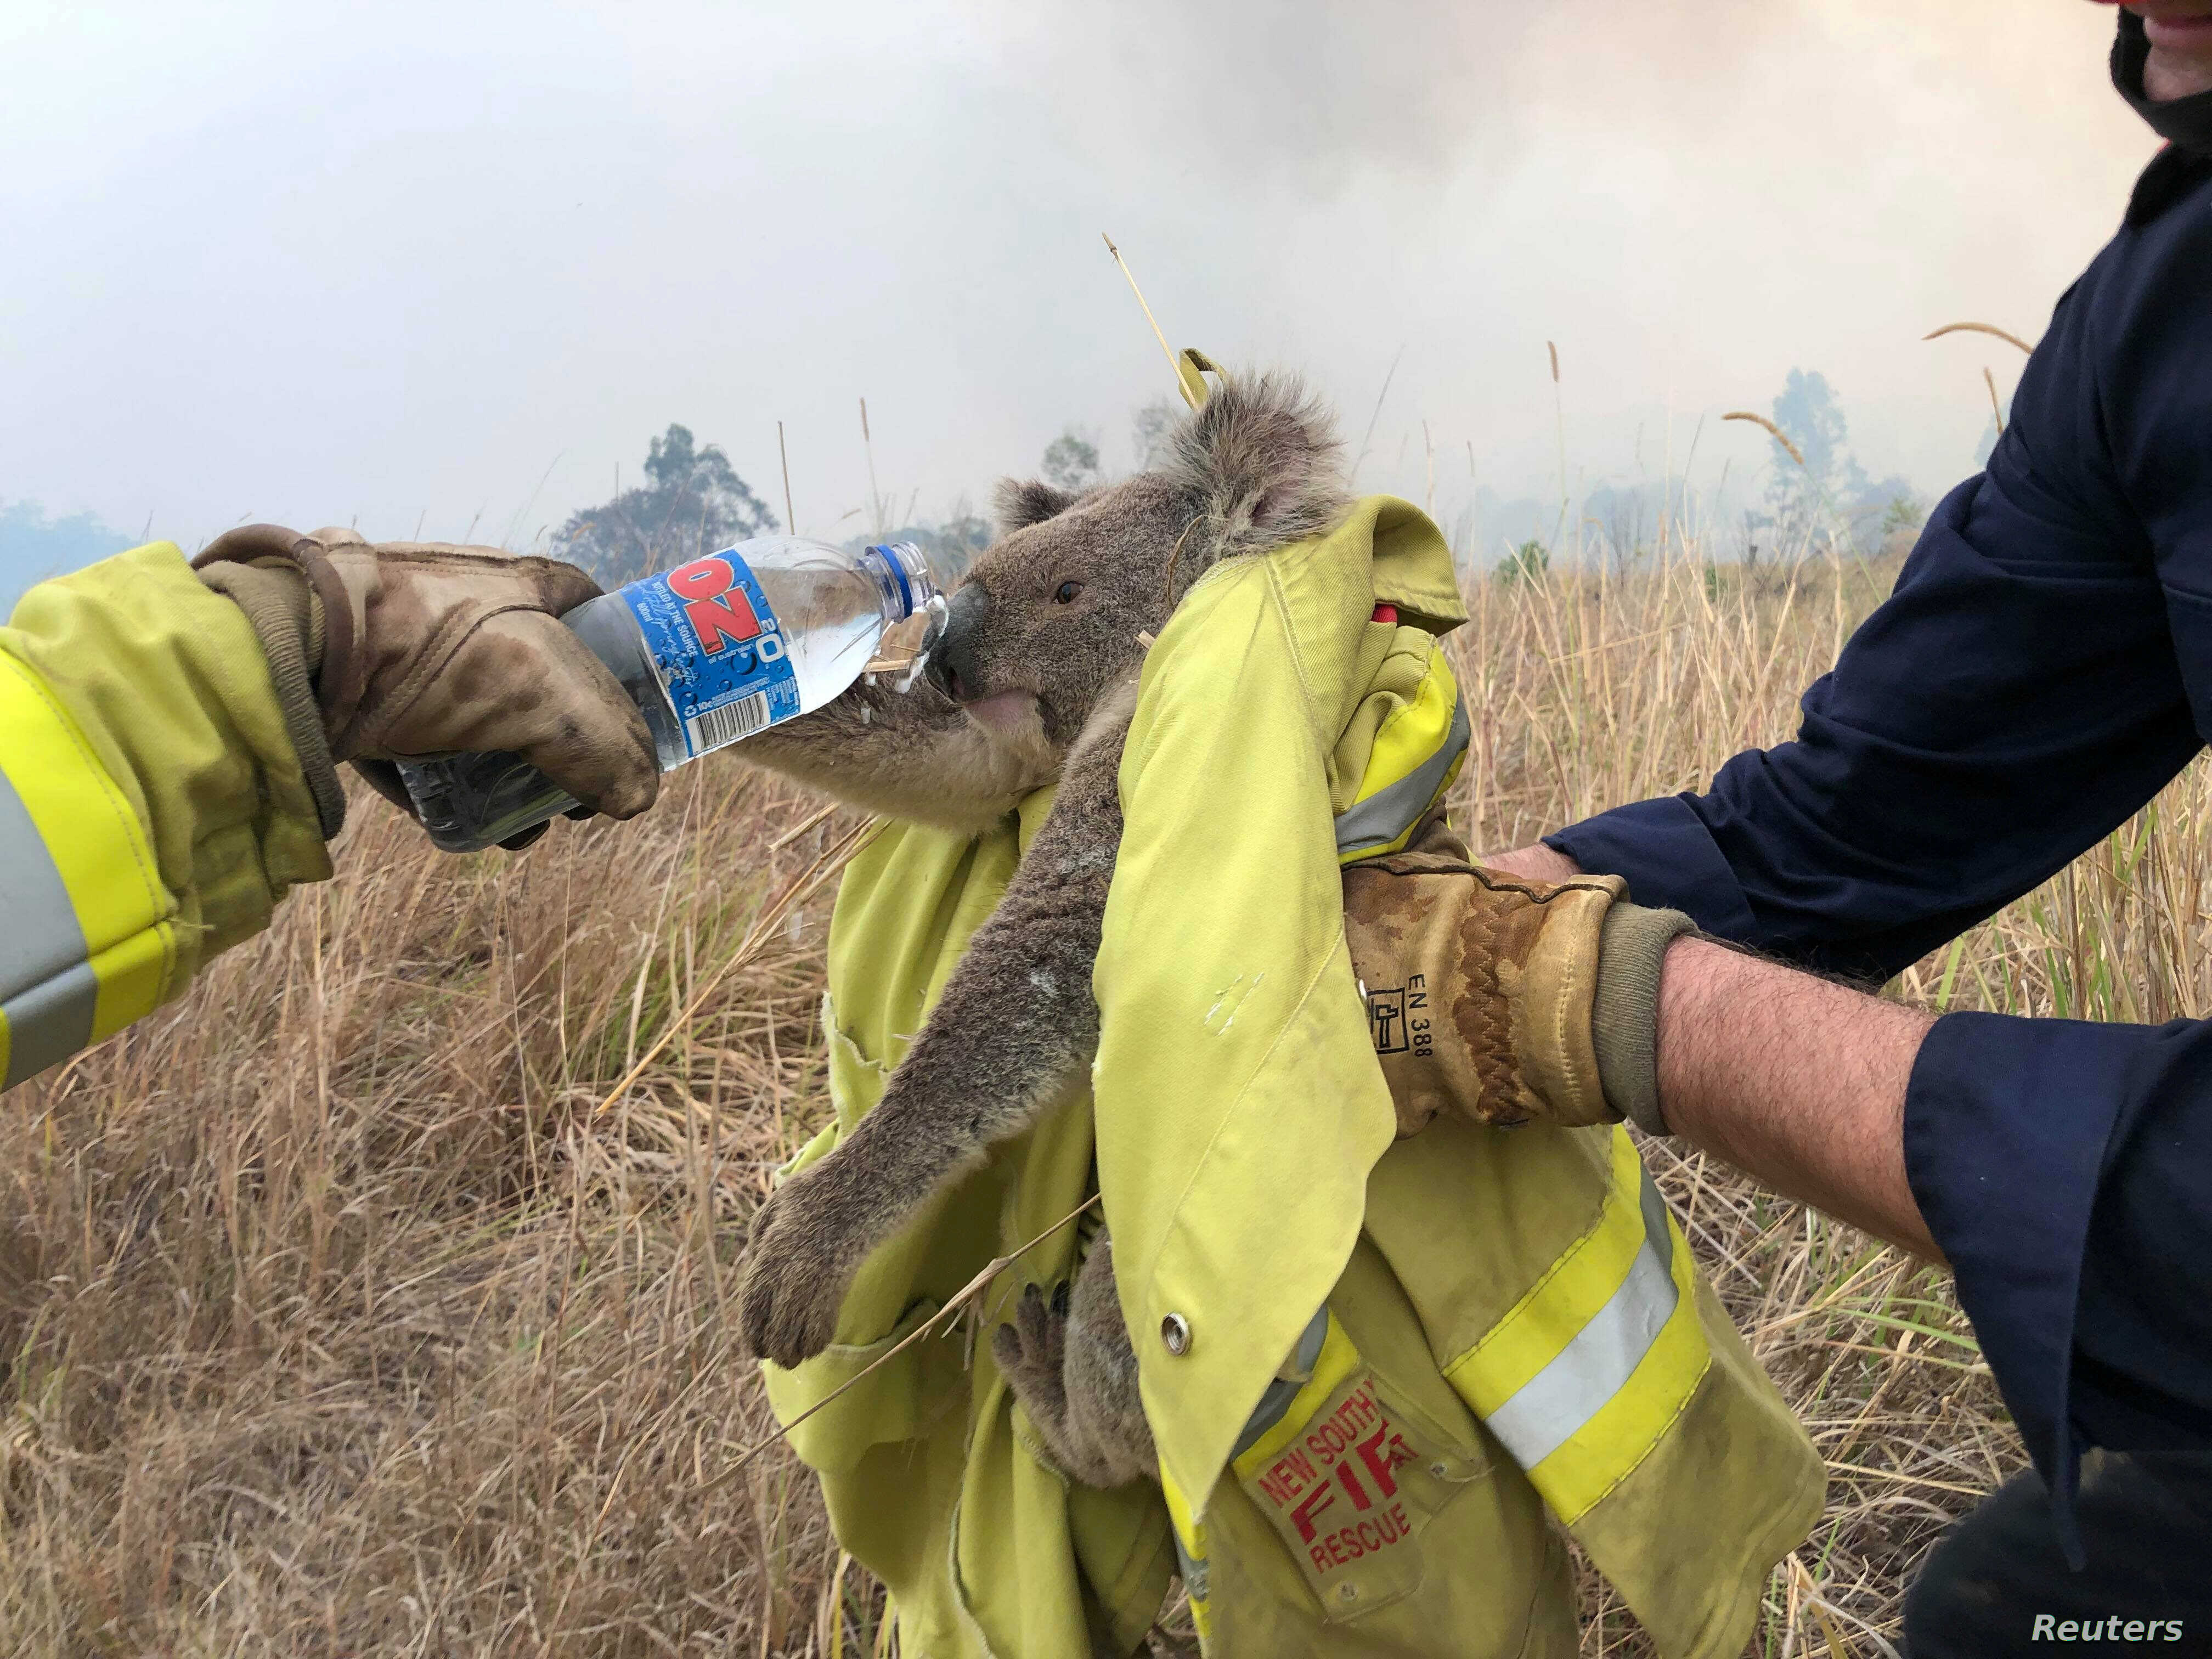 Image result for australia fire pictures wildlife""